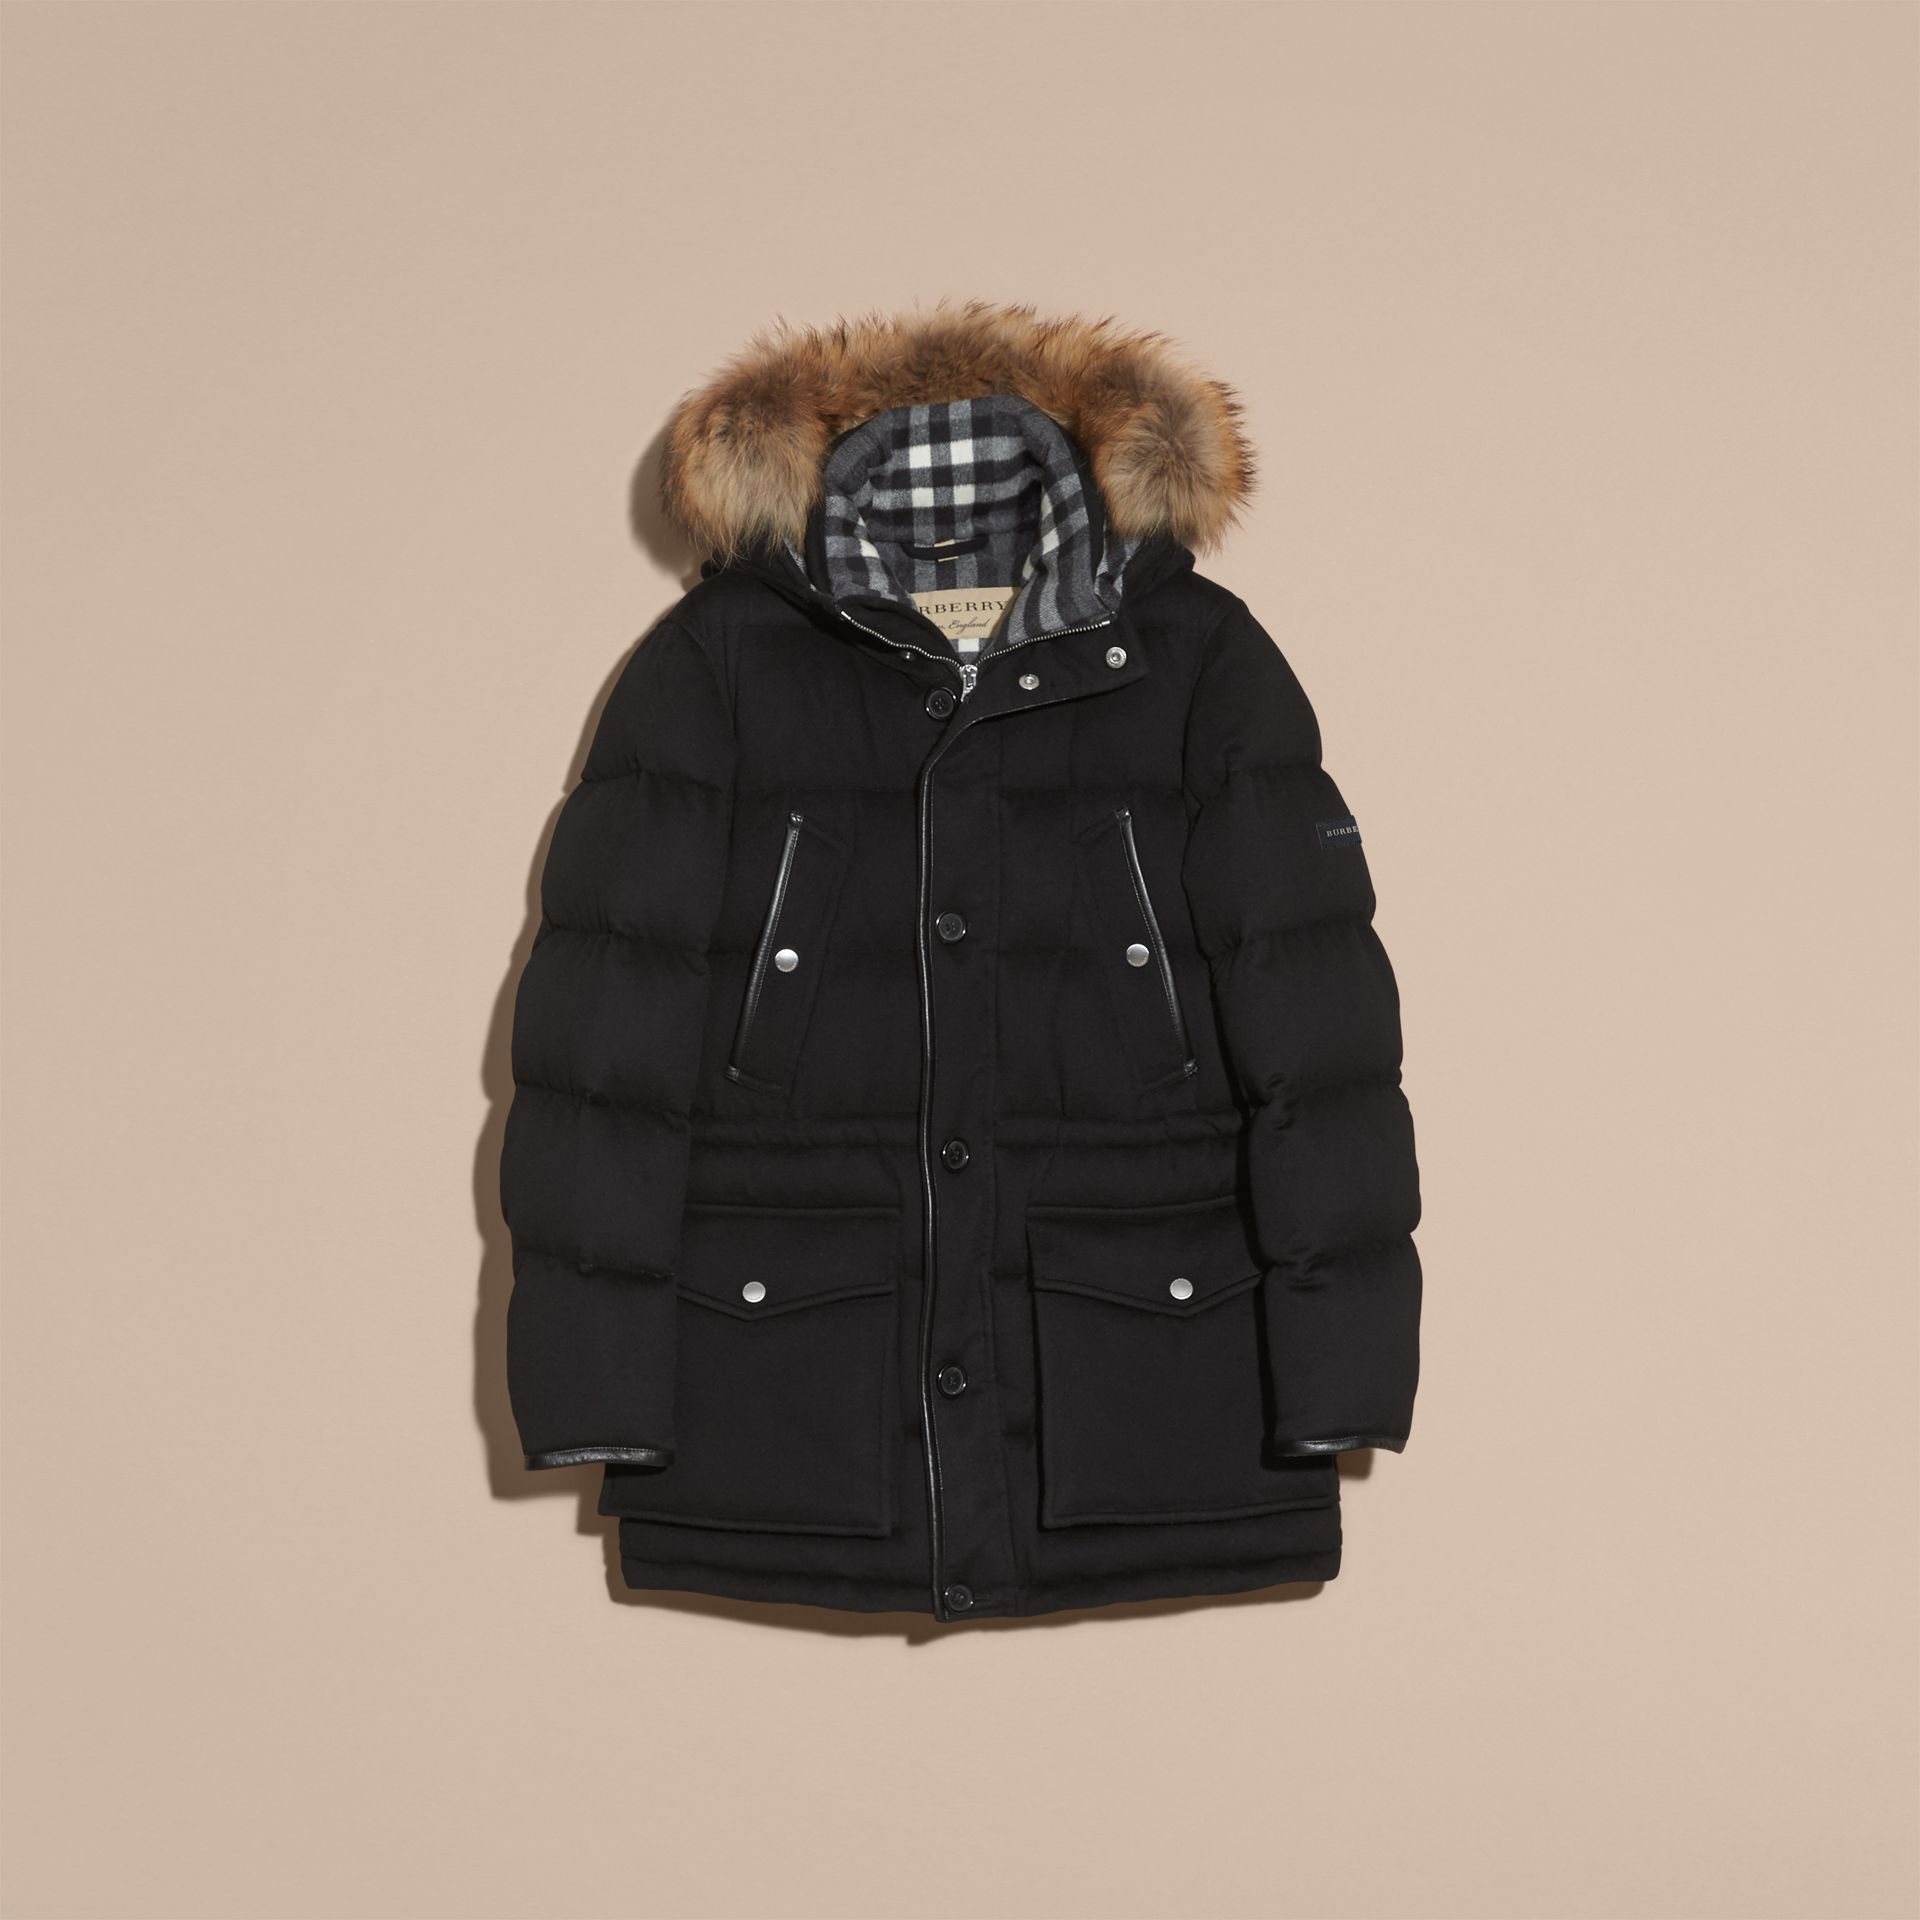 Black Down-filled Cashmere Parka with Detachable Fur Trim Black - gallery image 4